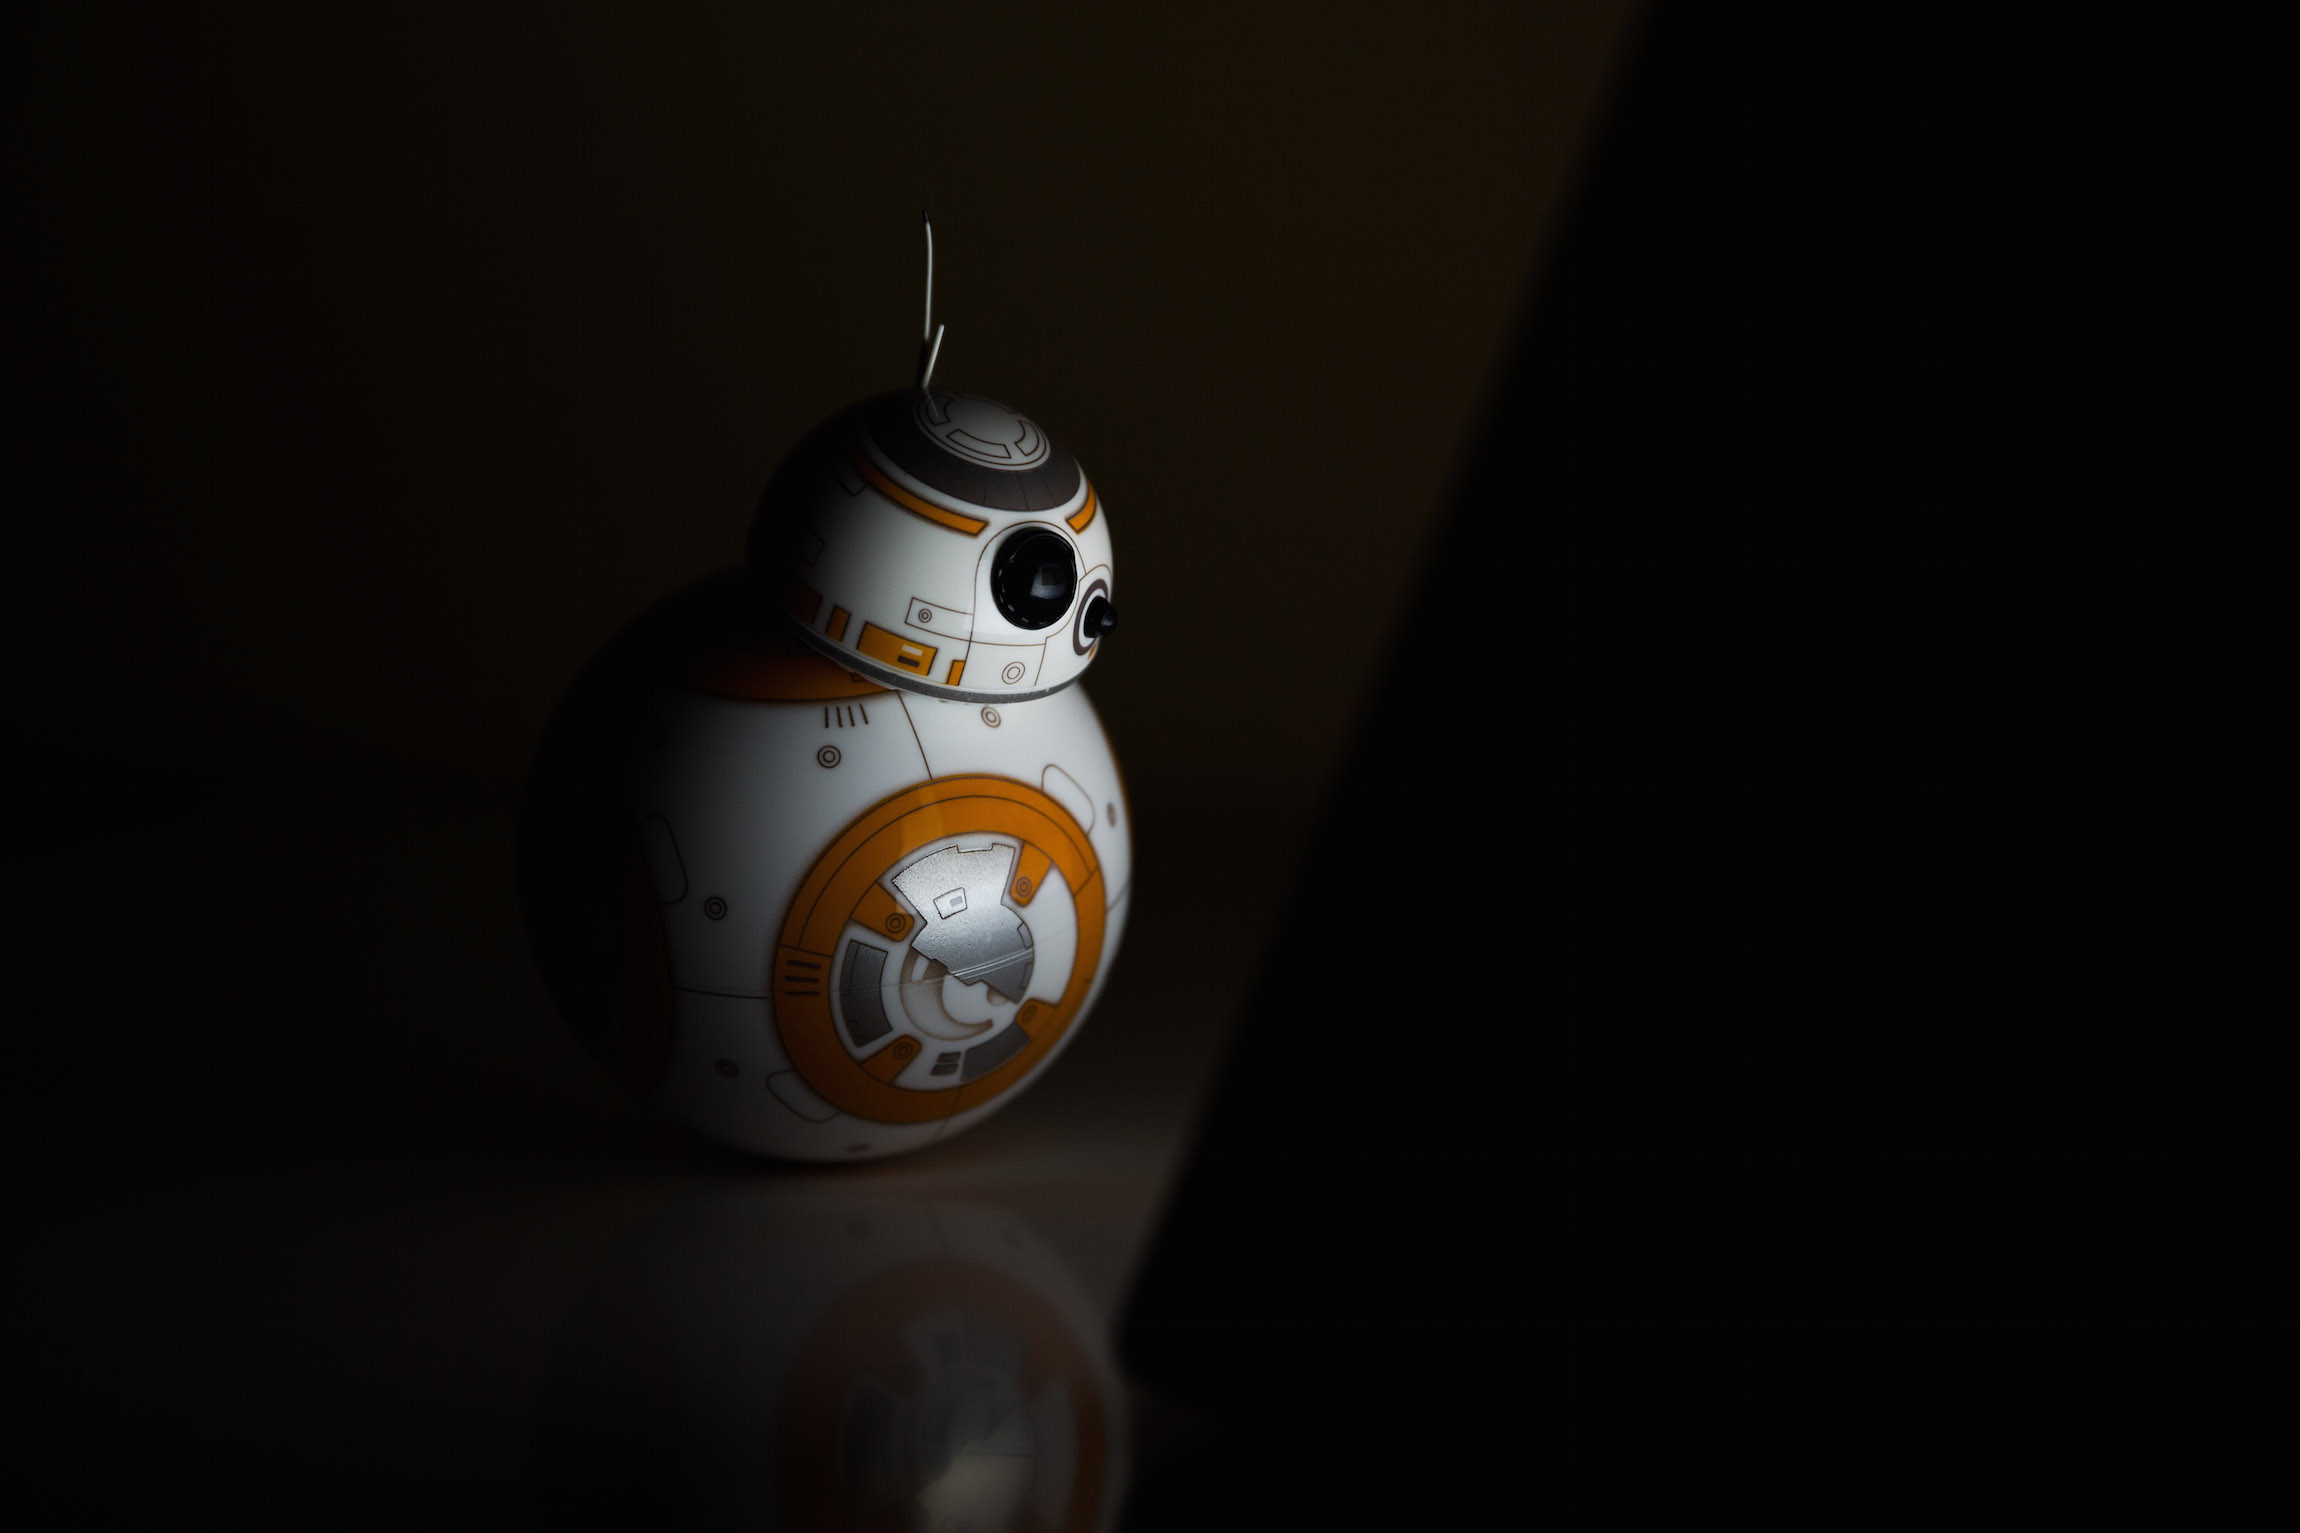 A Day in the Life of Sphero's BB-8 | StarWars.com